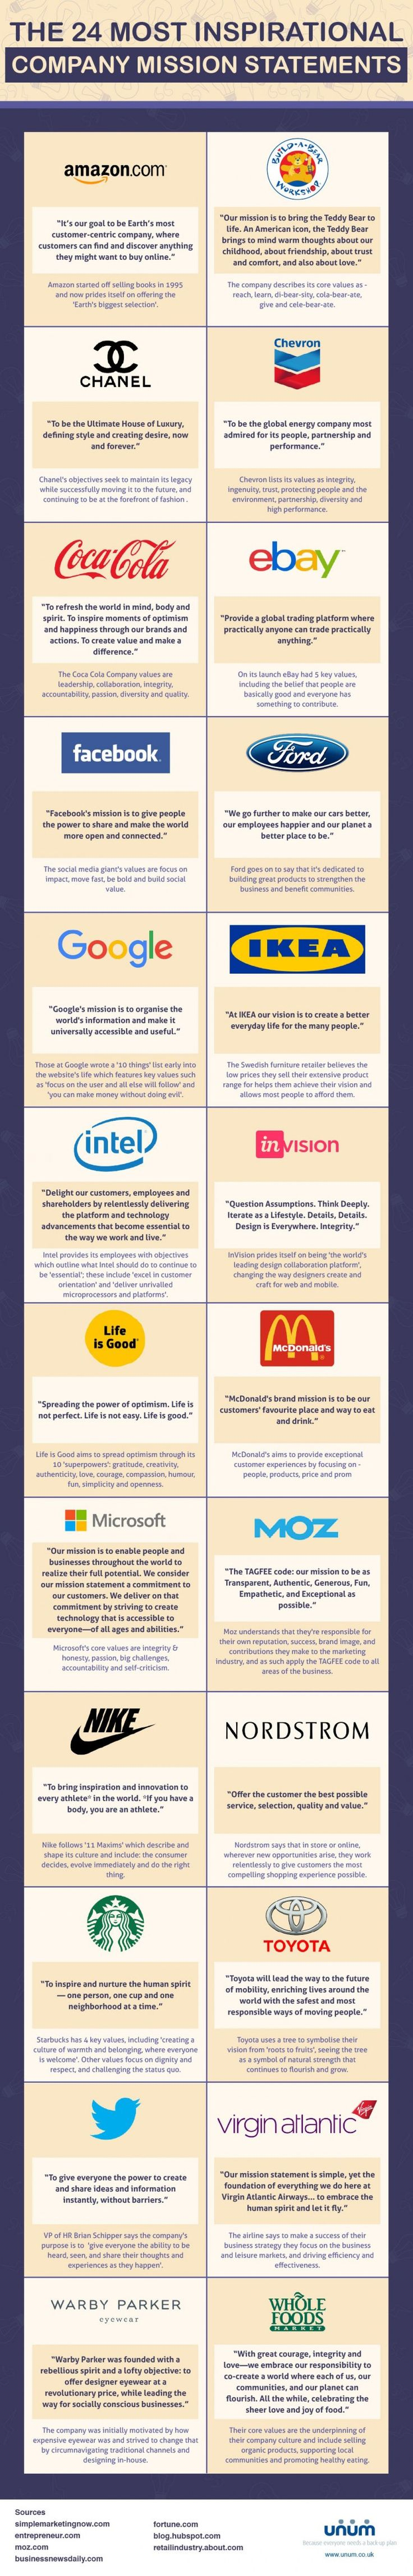 Infographic: Lies, Damned Lies and Brand Mission Statements | StockLogos.com